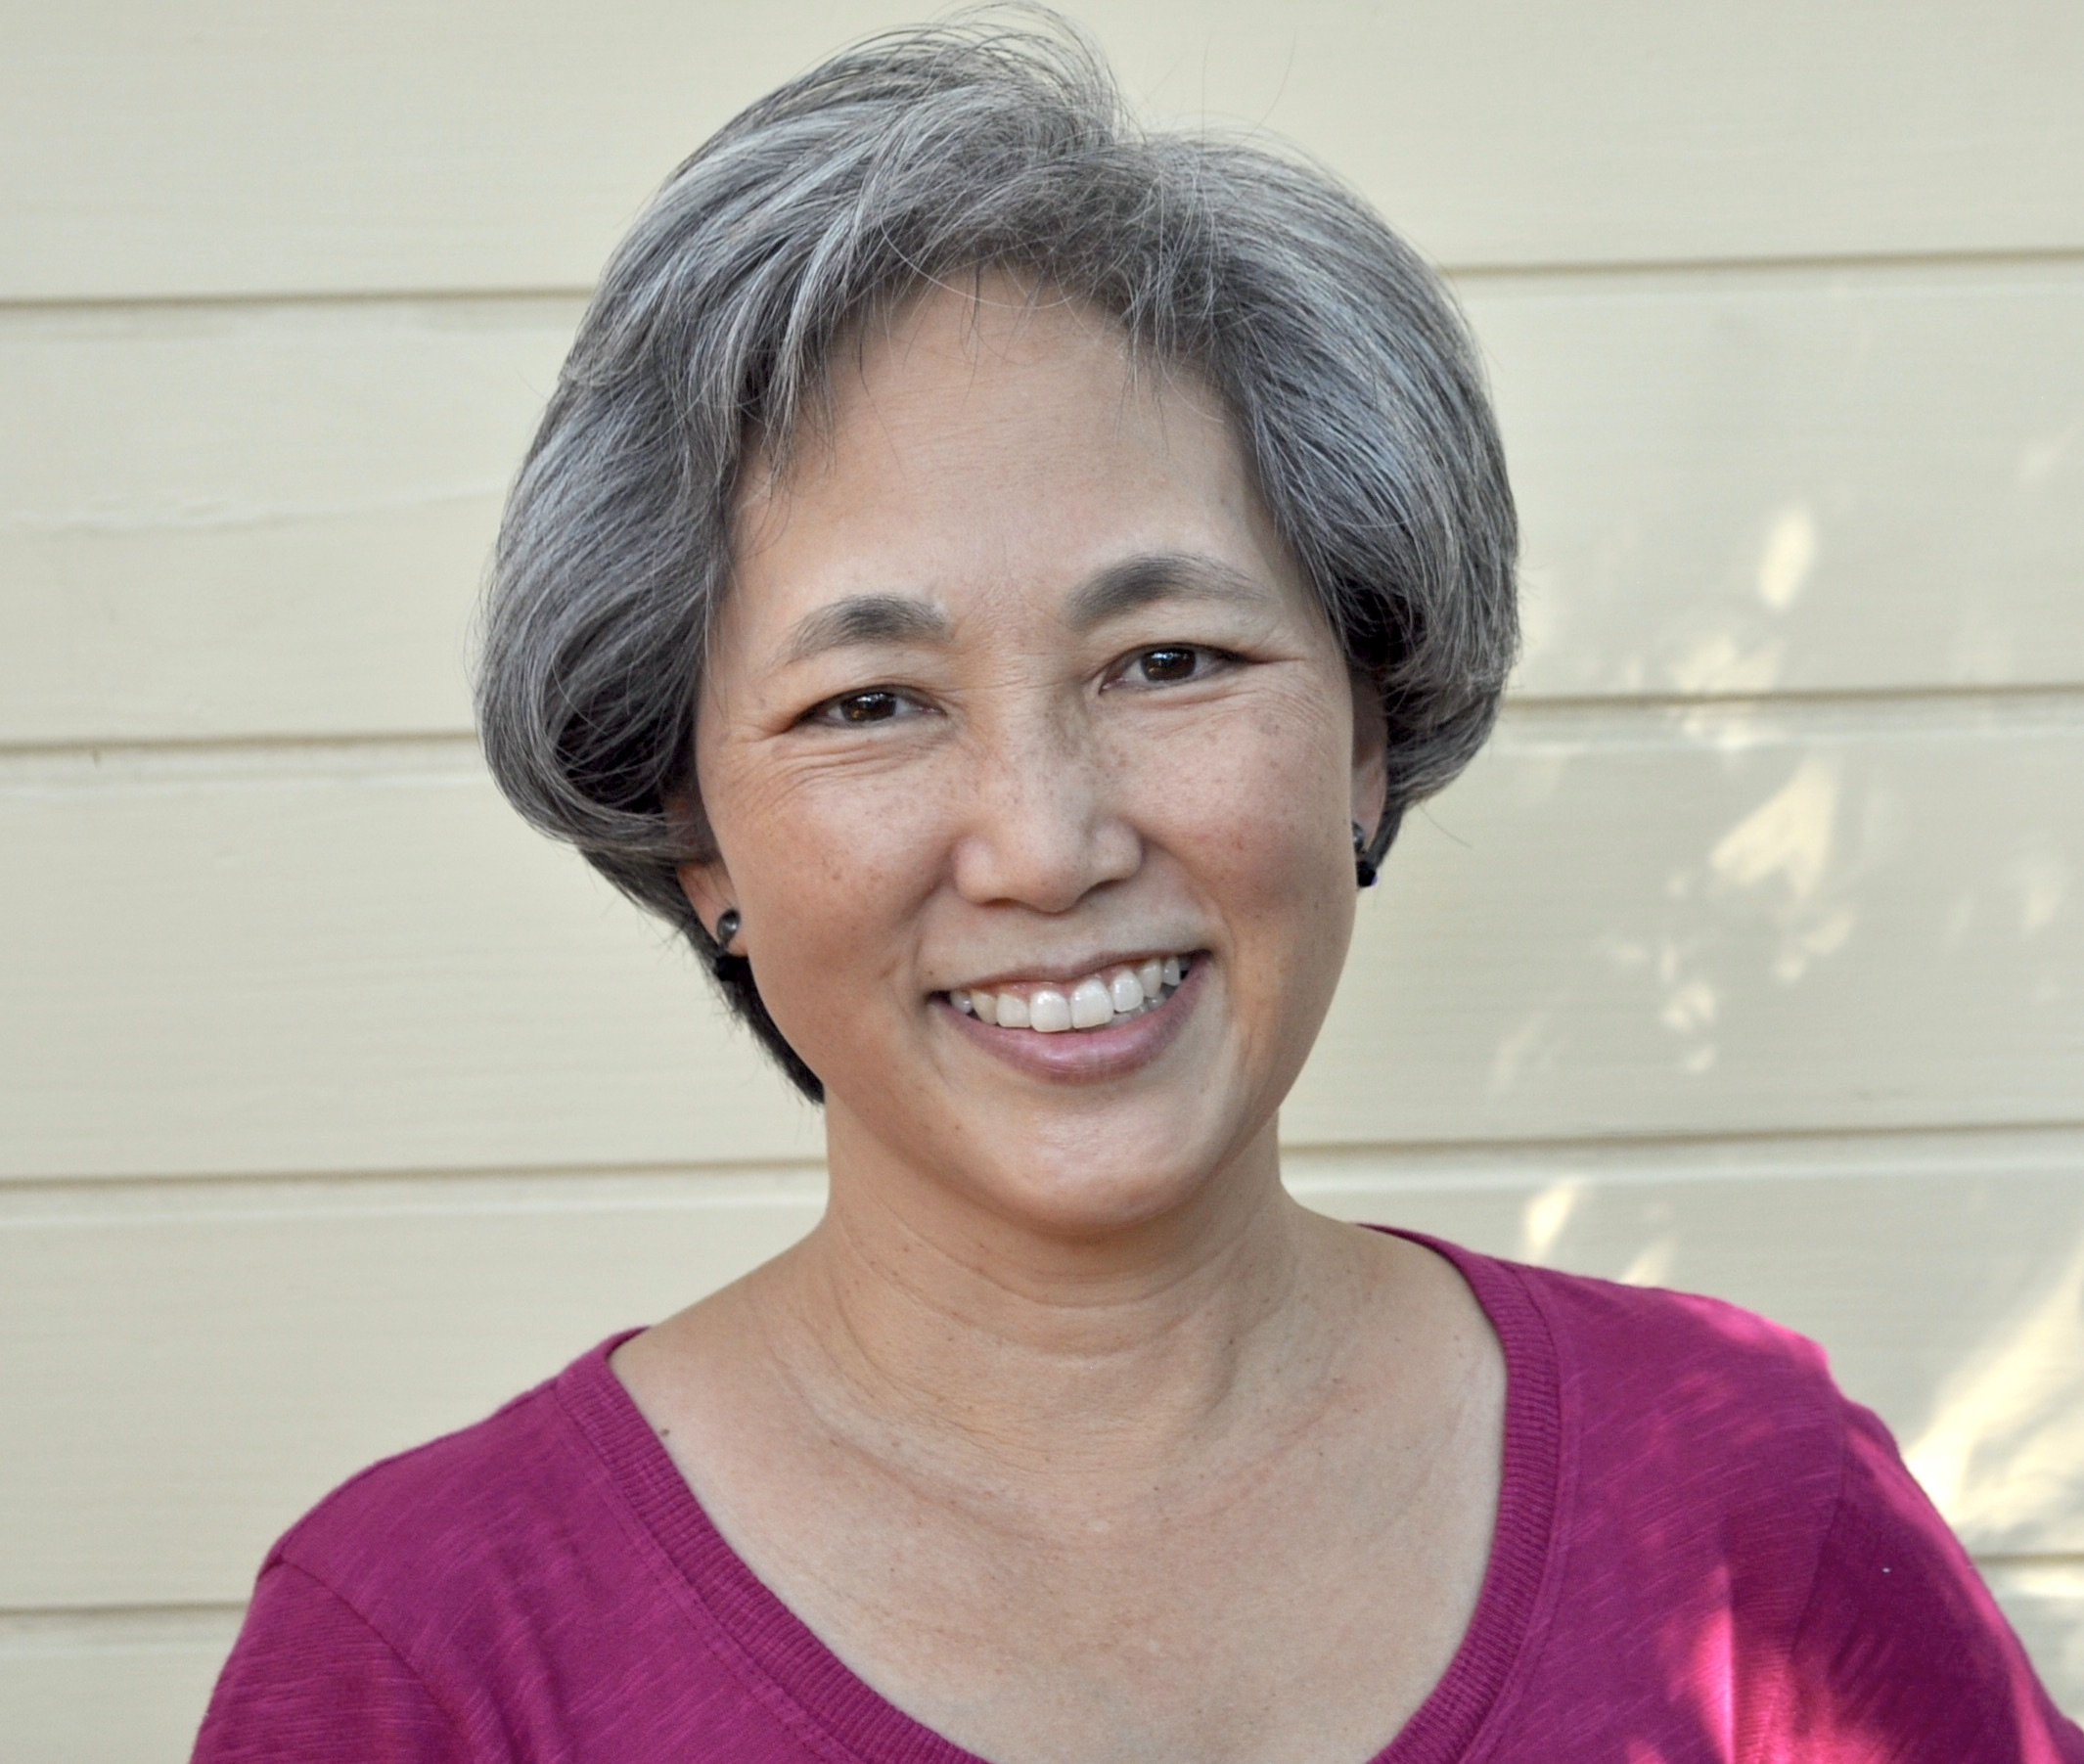 Head shot of Carol Kim